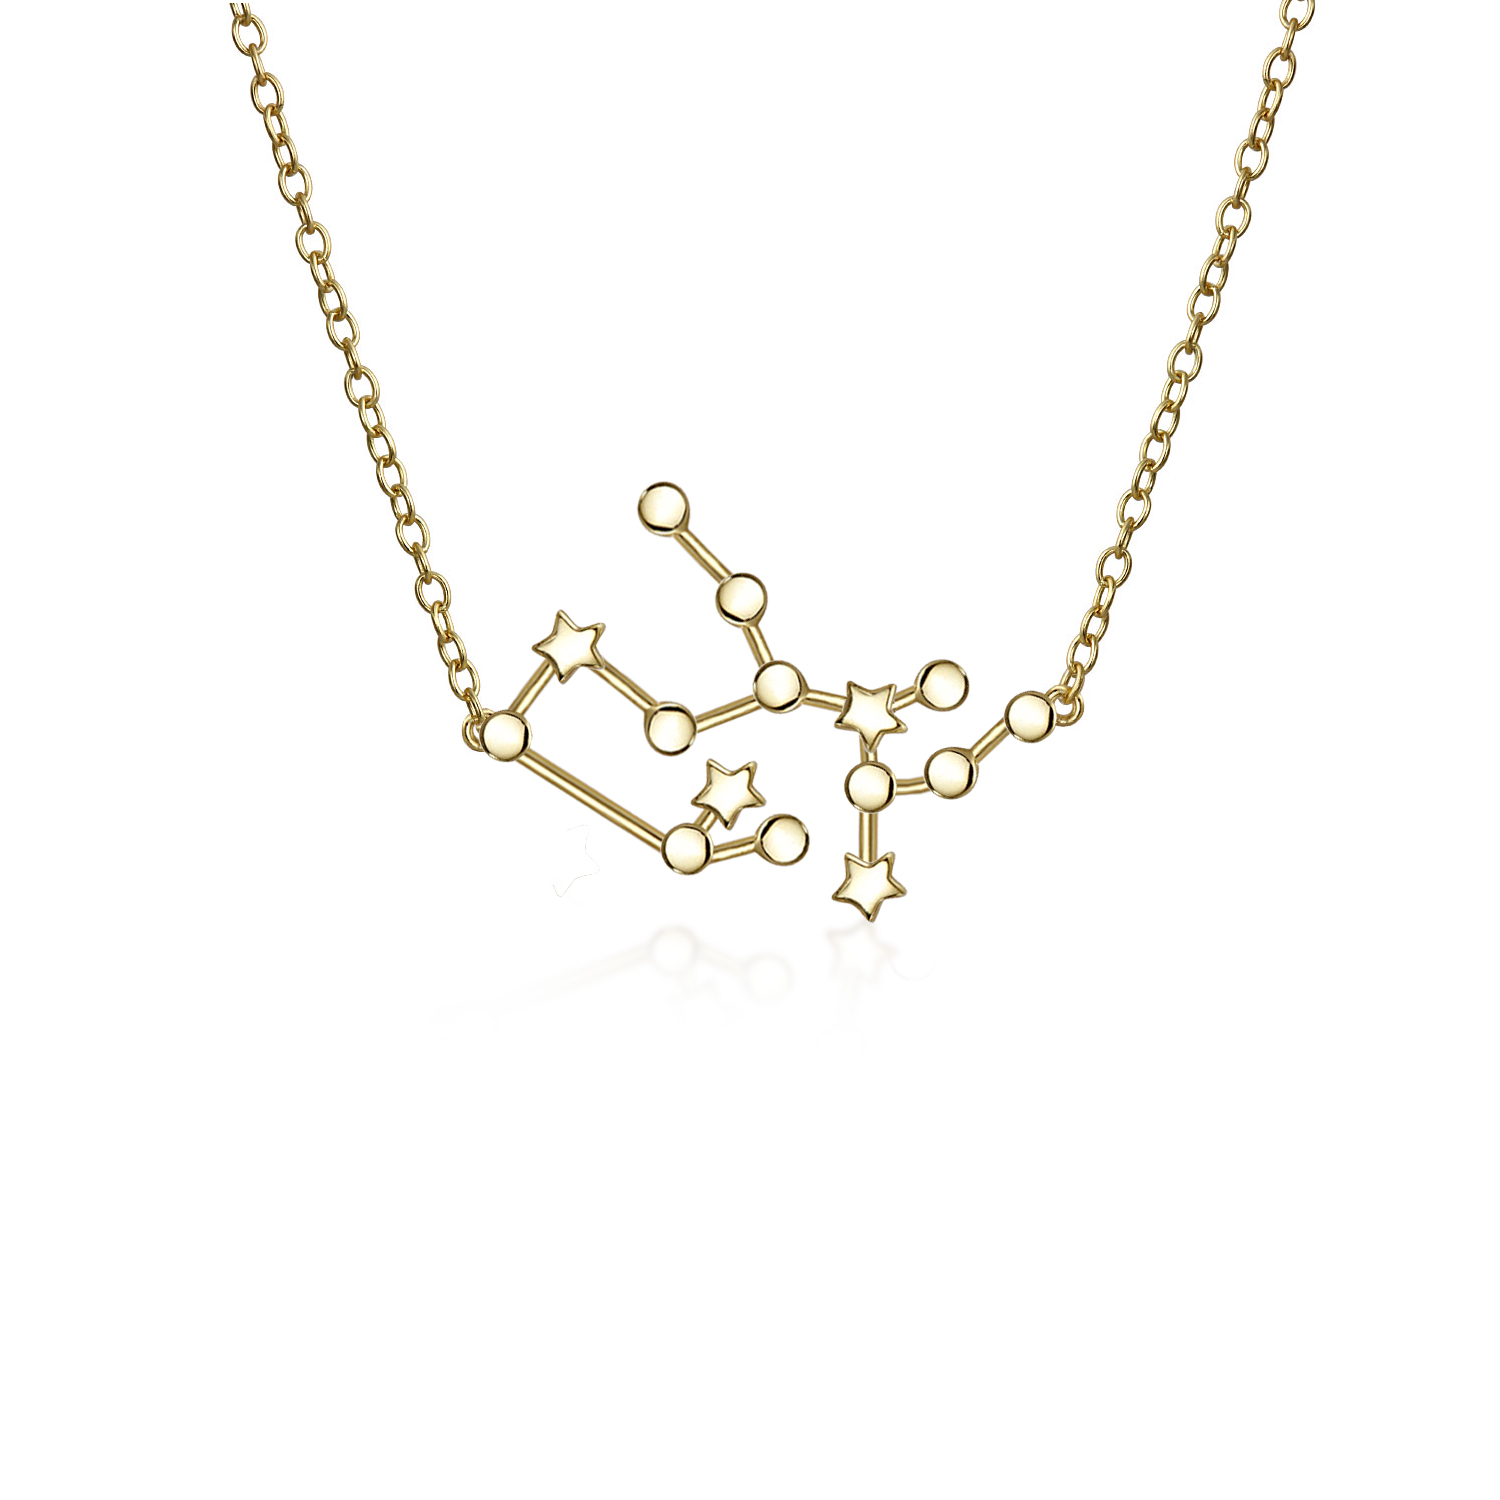 Details about Sagittarius Constellation Astrology Zodiac Necklace 14K Gold  Plated Pendant